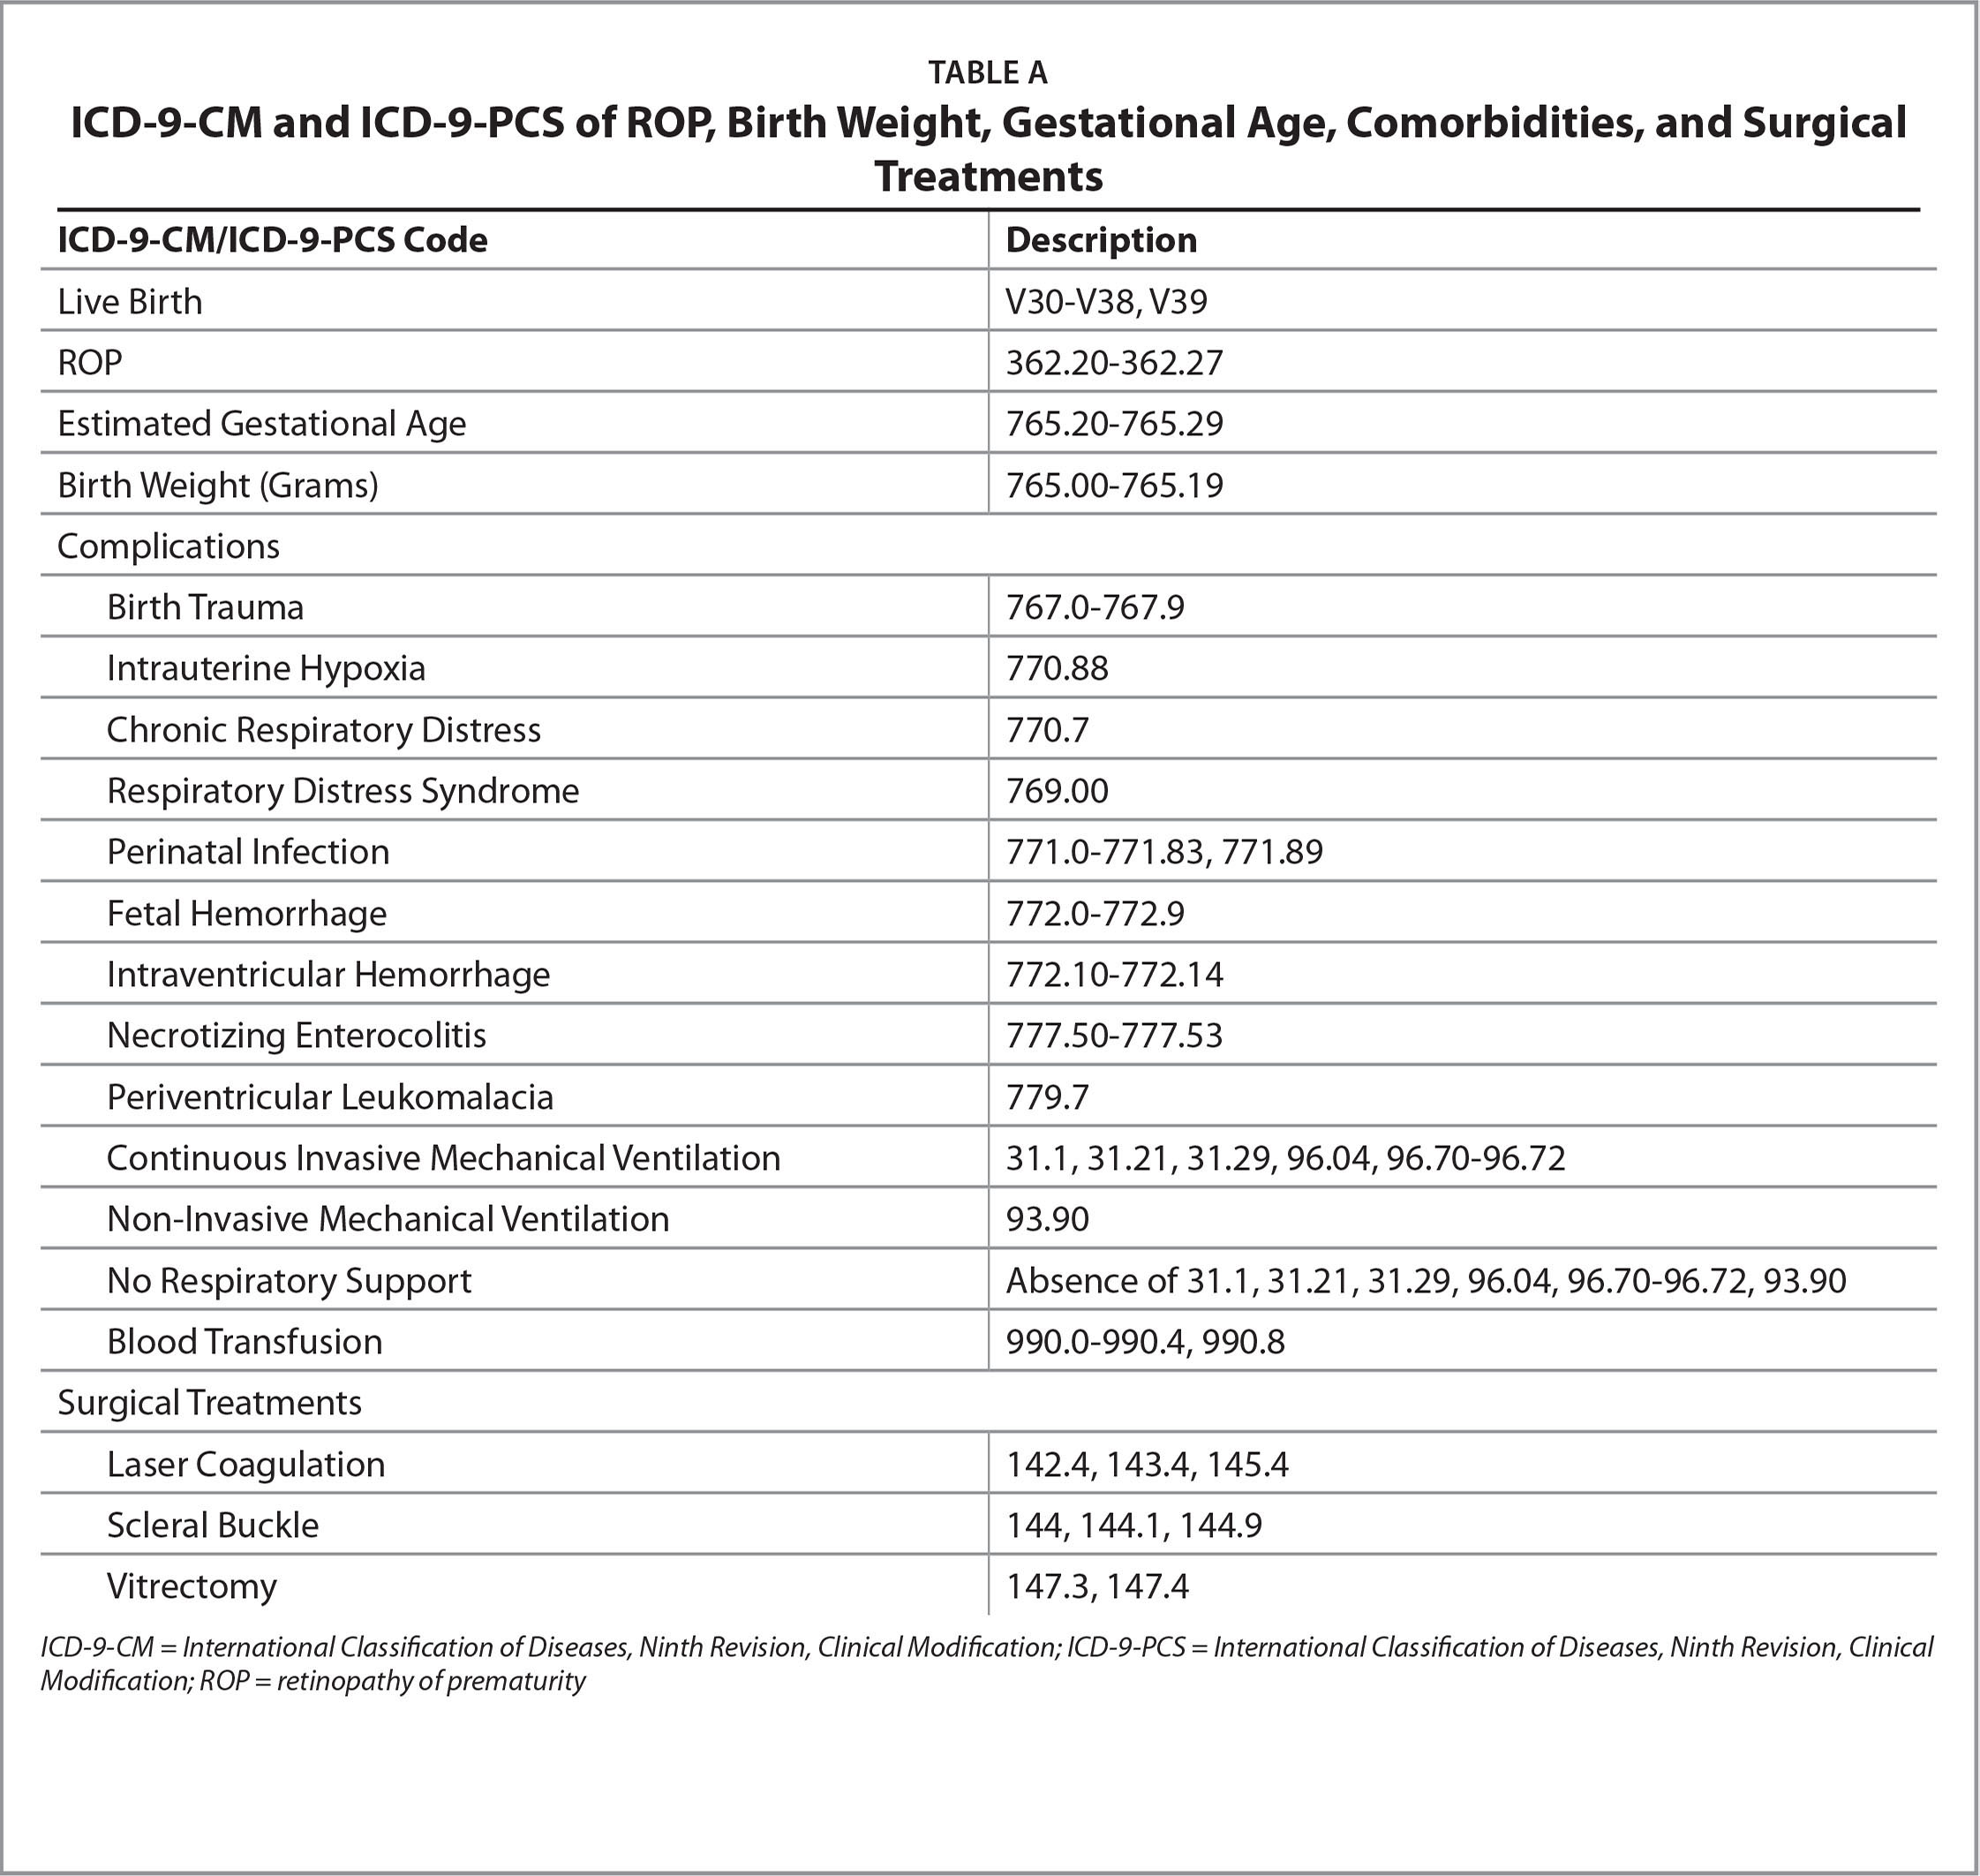 ICD-9-CM and ICD-9-PCS of ROP, Birth Weight, Gestational Age, Comorbidities, and Surgical Treatments;